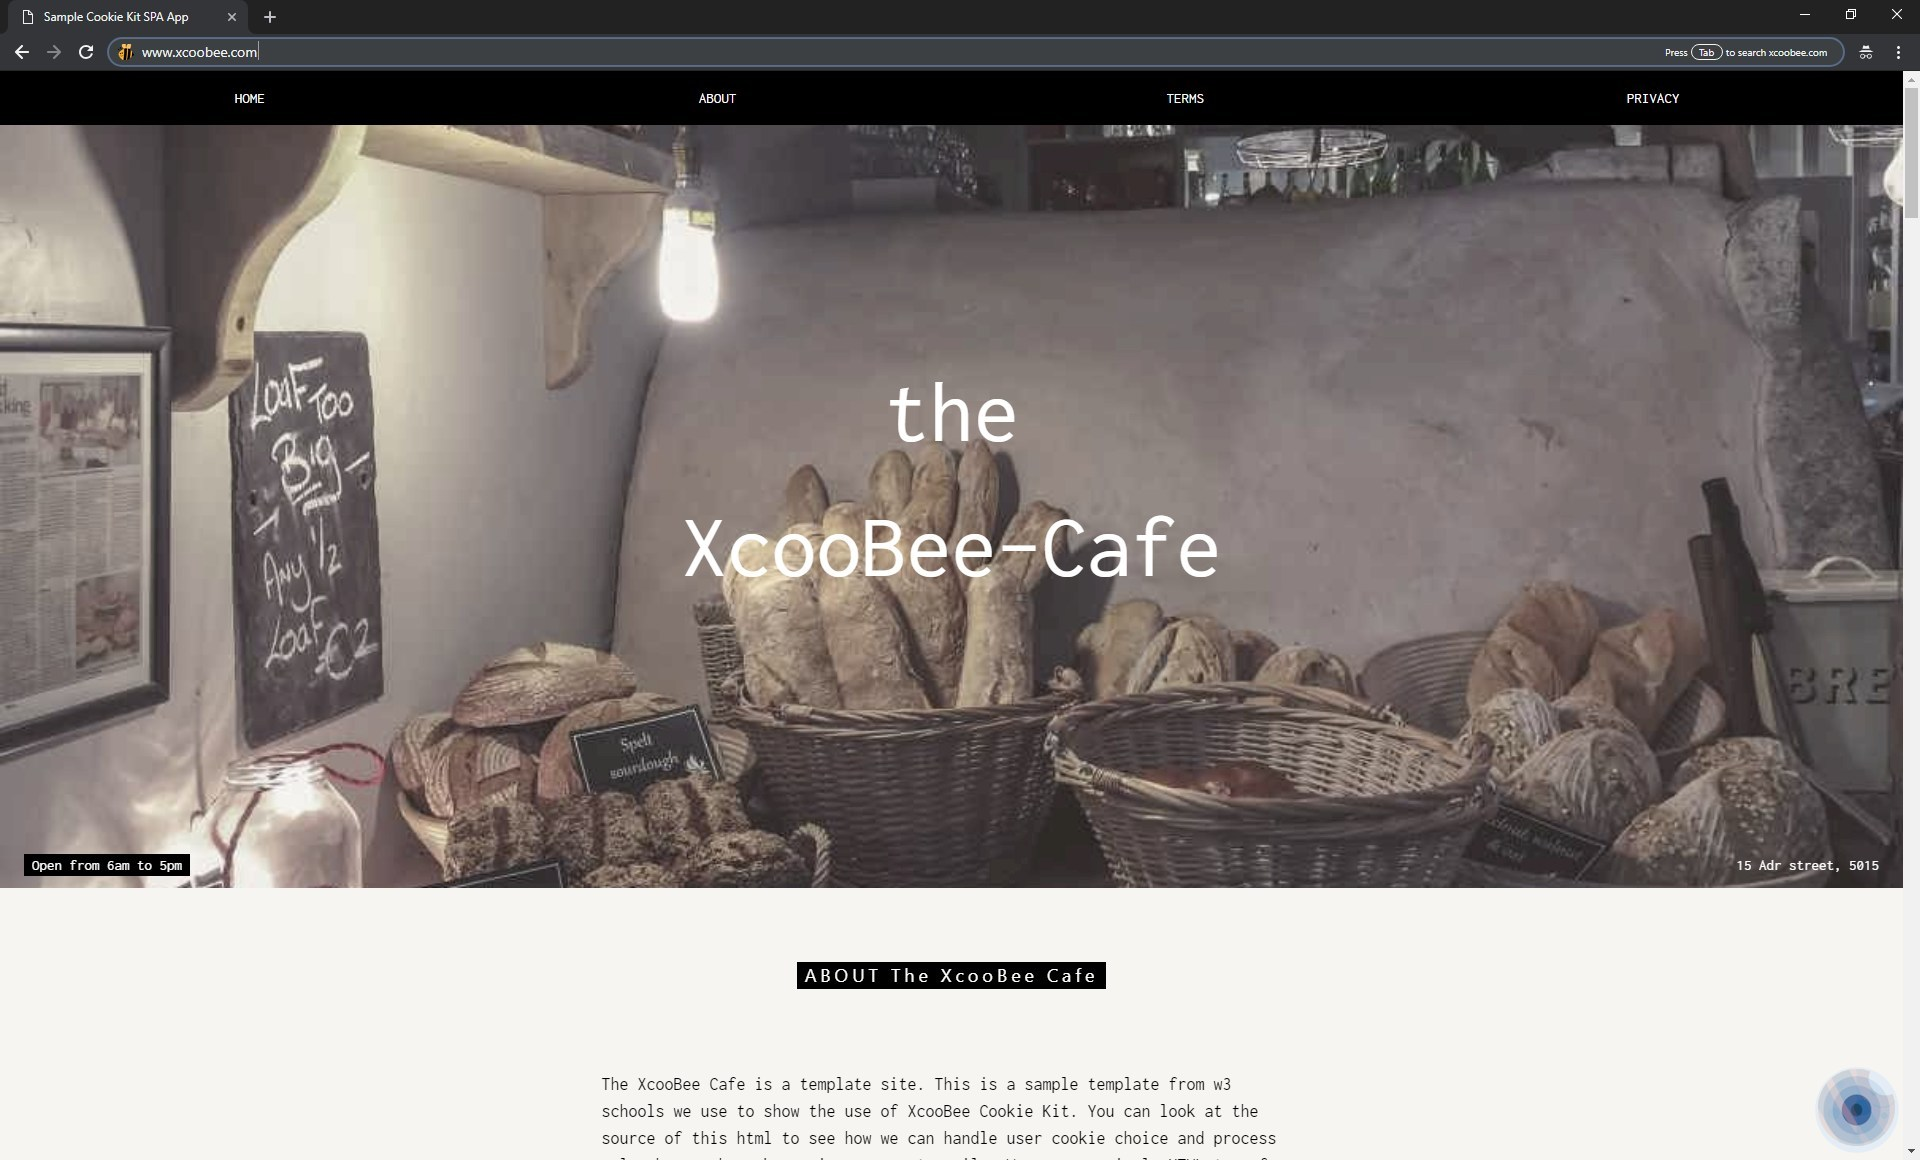 Blue pulse to indicate that XcooBee Cookie Kit has negotiated users preferences with site.